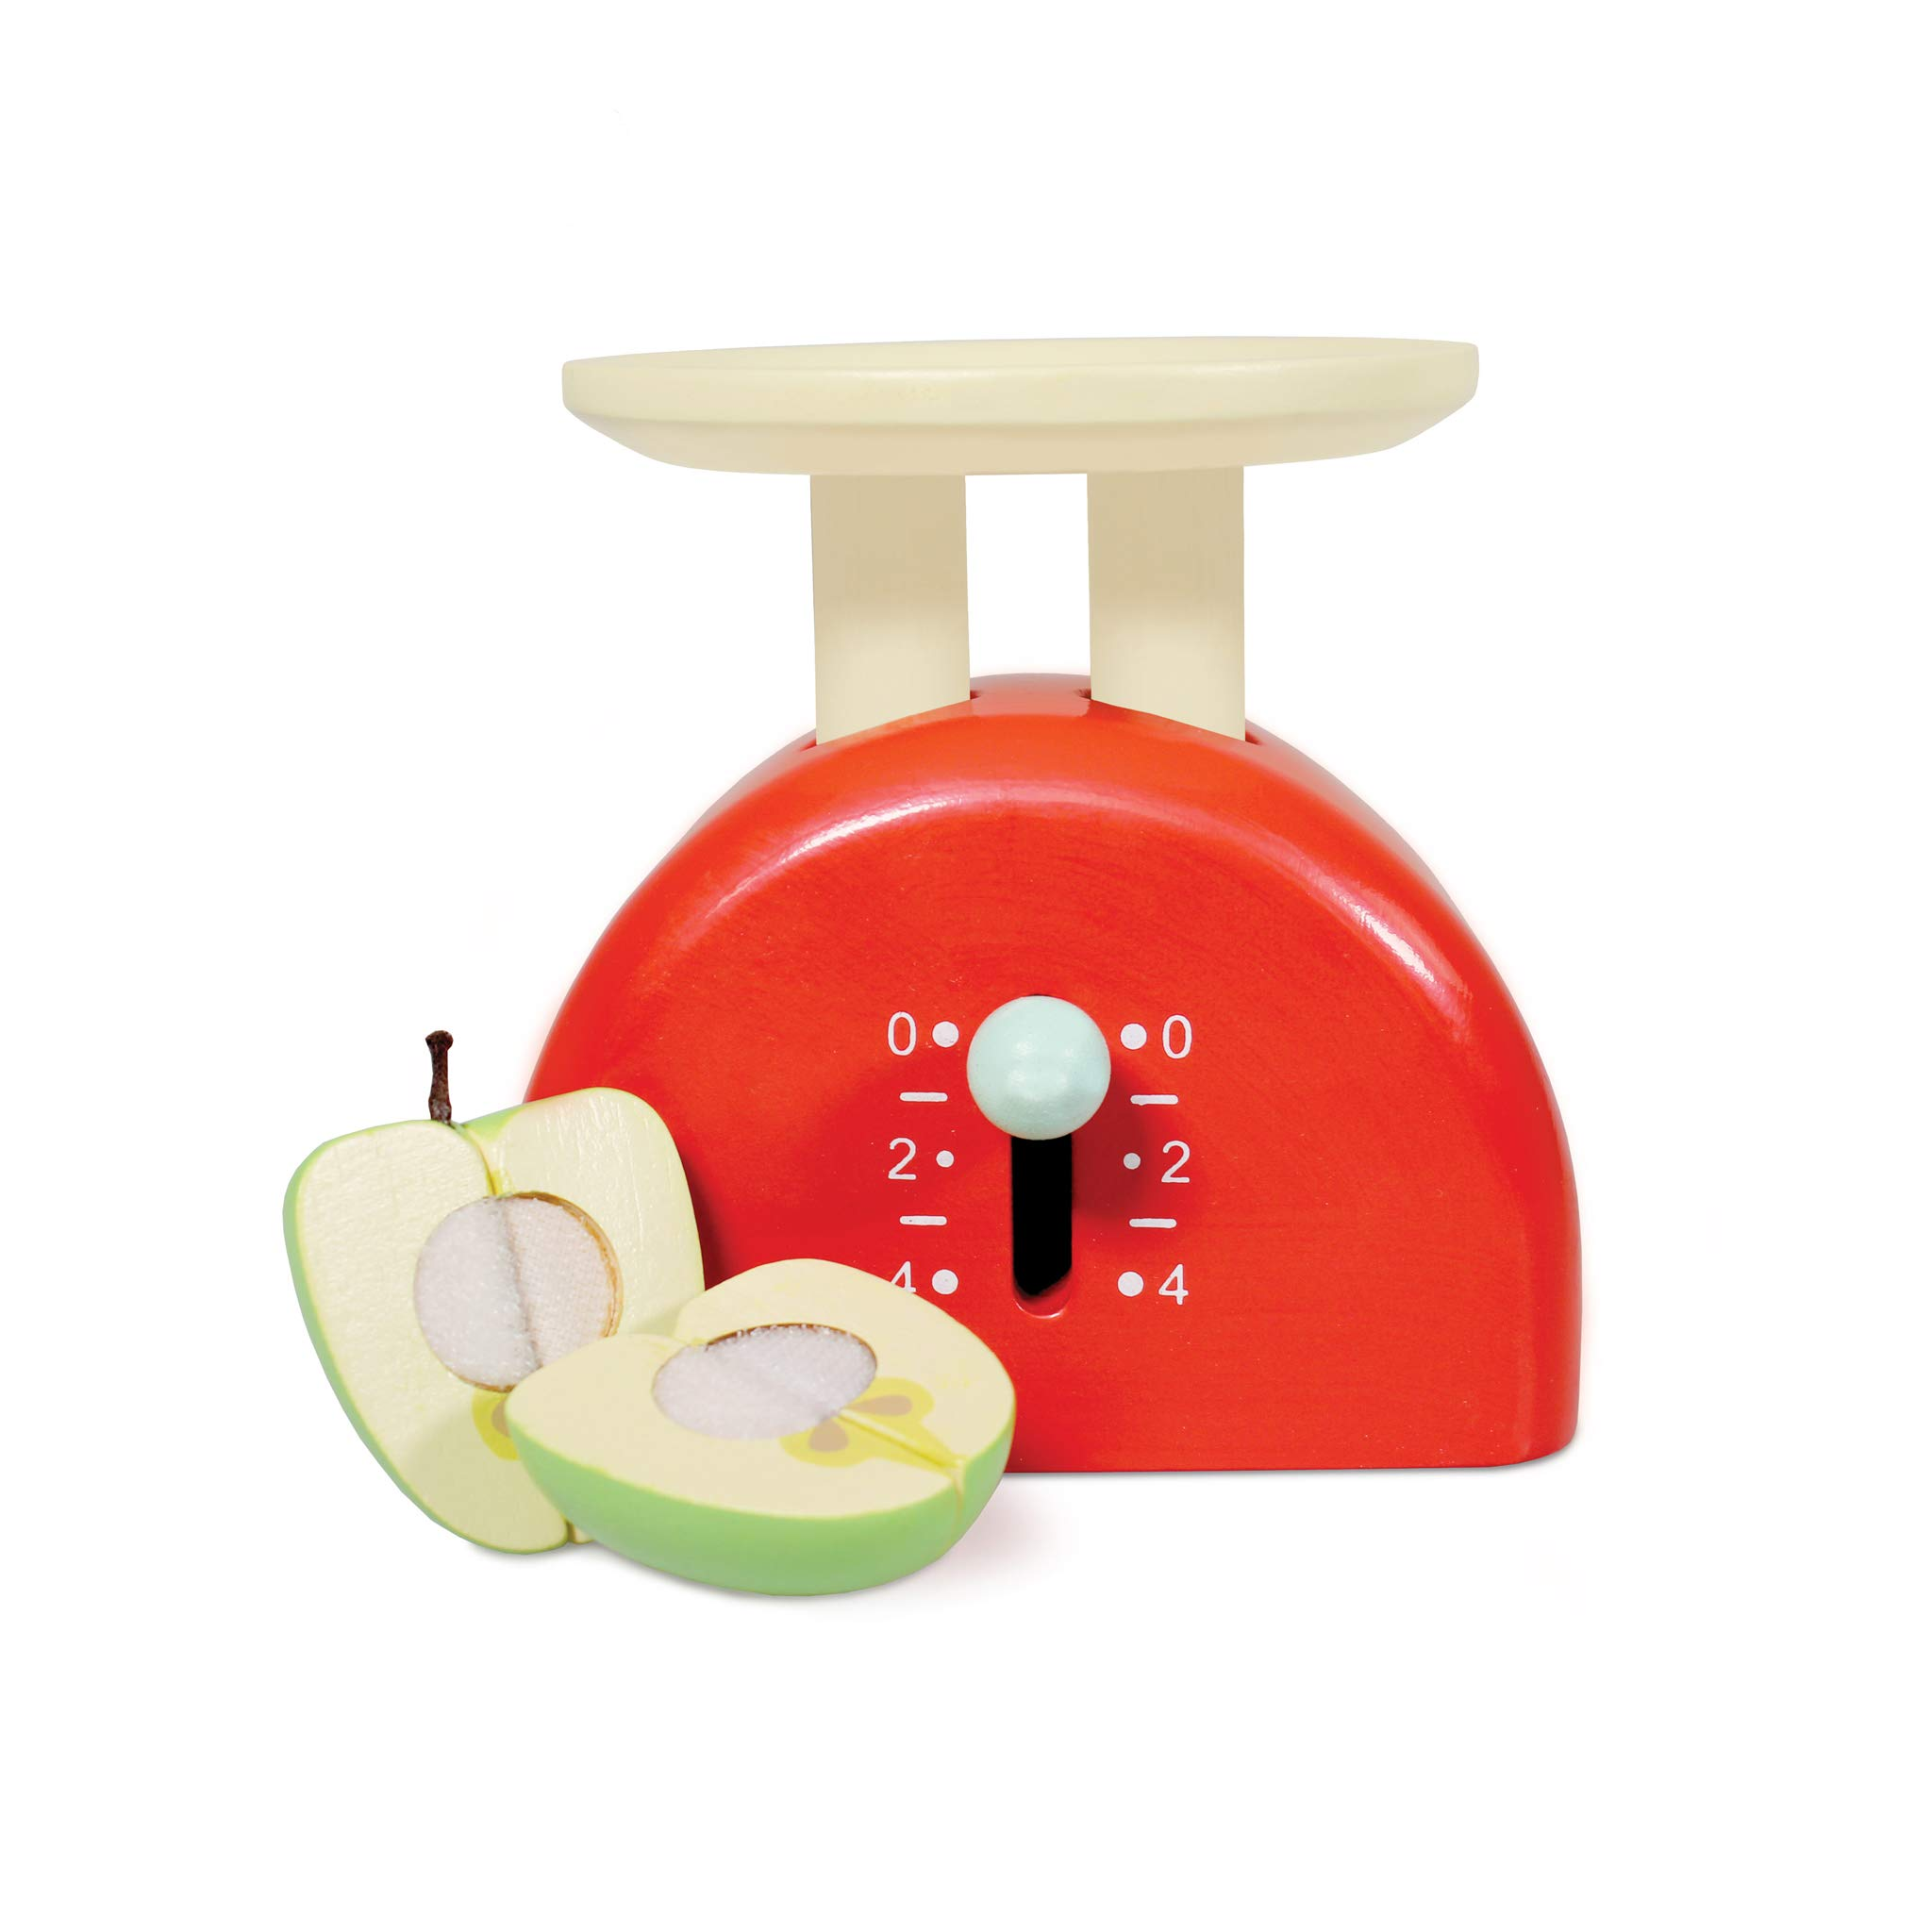 Le Toy Van Honeybake Wooden Weighing Scales by Le Toy Van